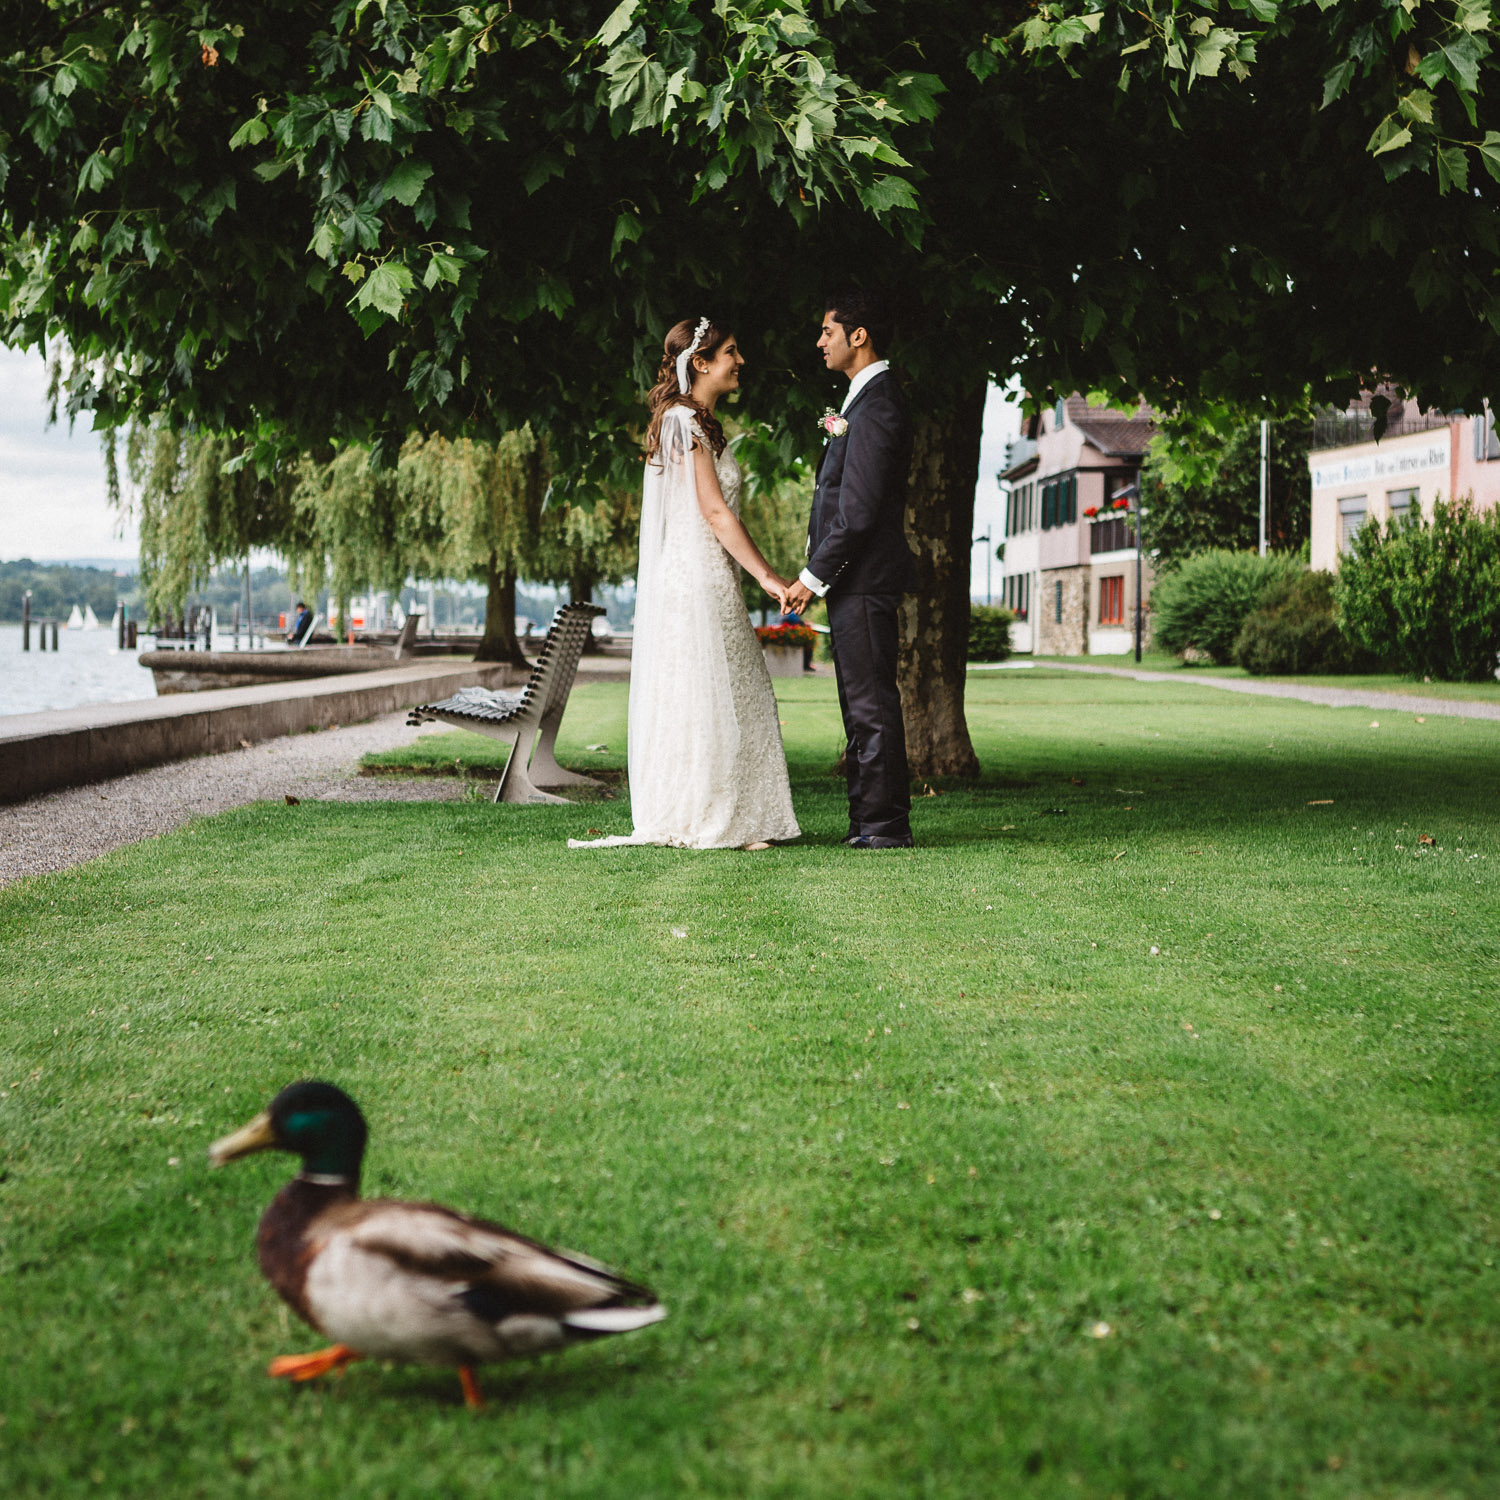 Wedding photographer Konstanz - True Love Photography